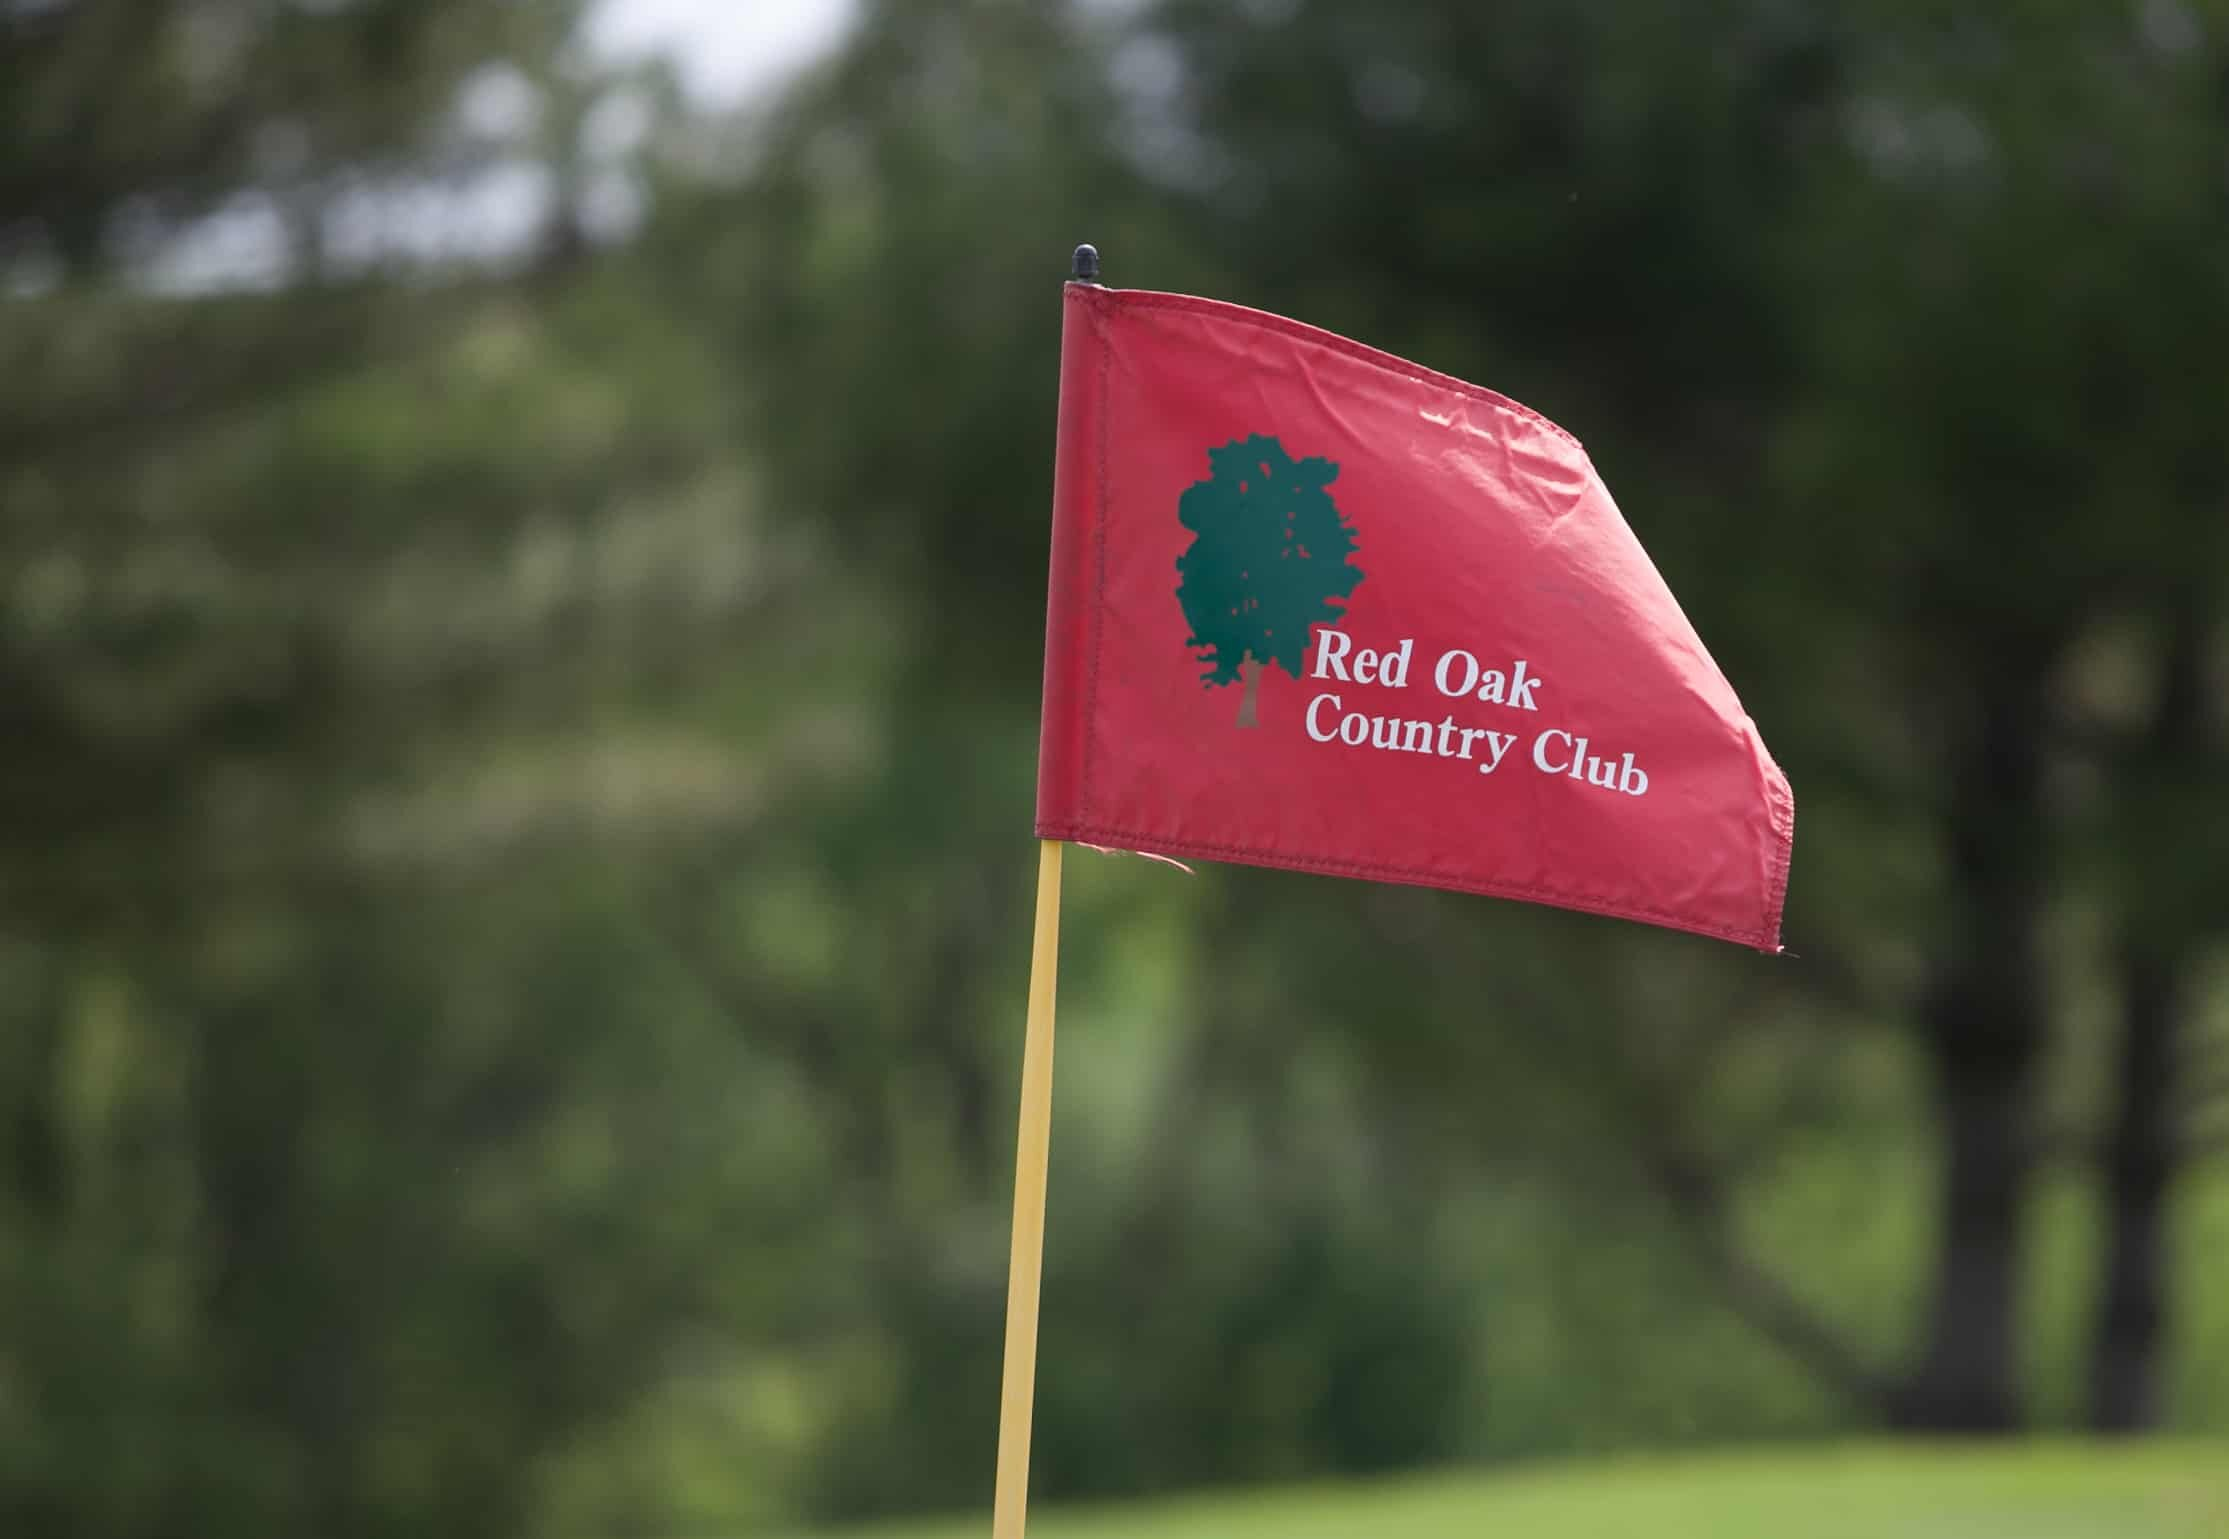 Red Oak Country Club